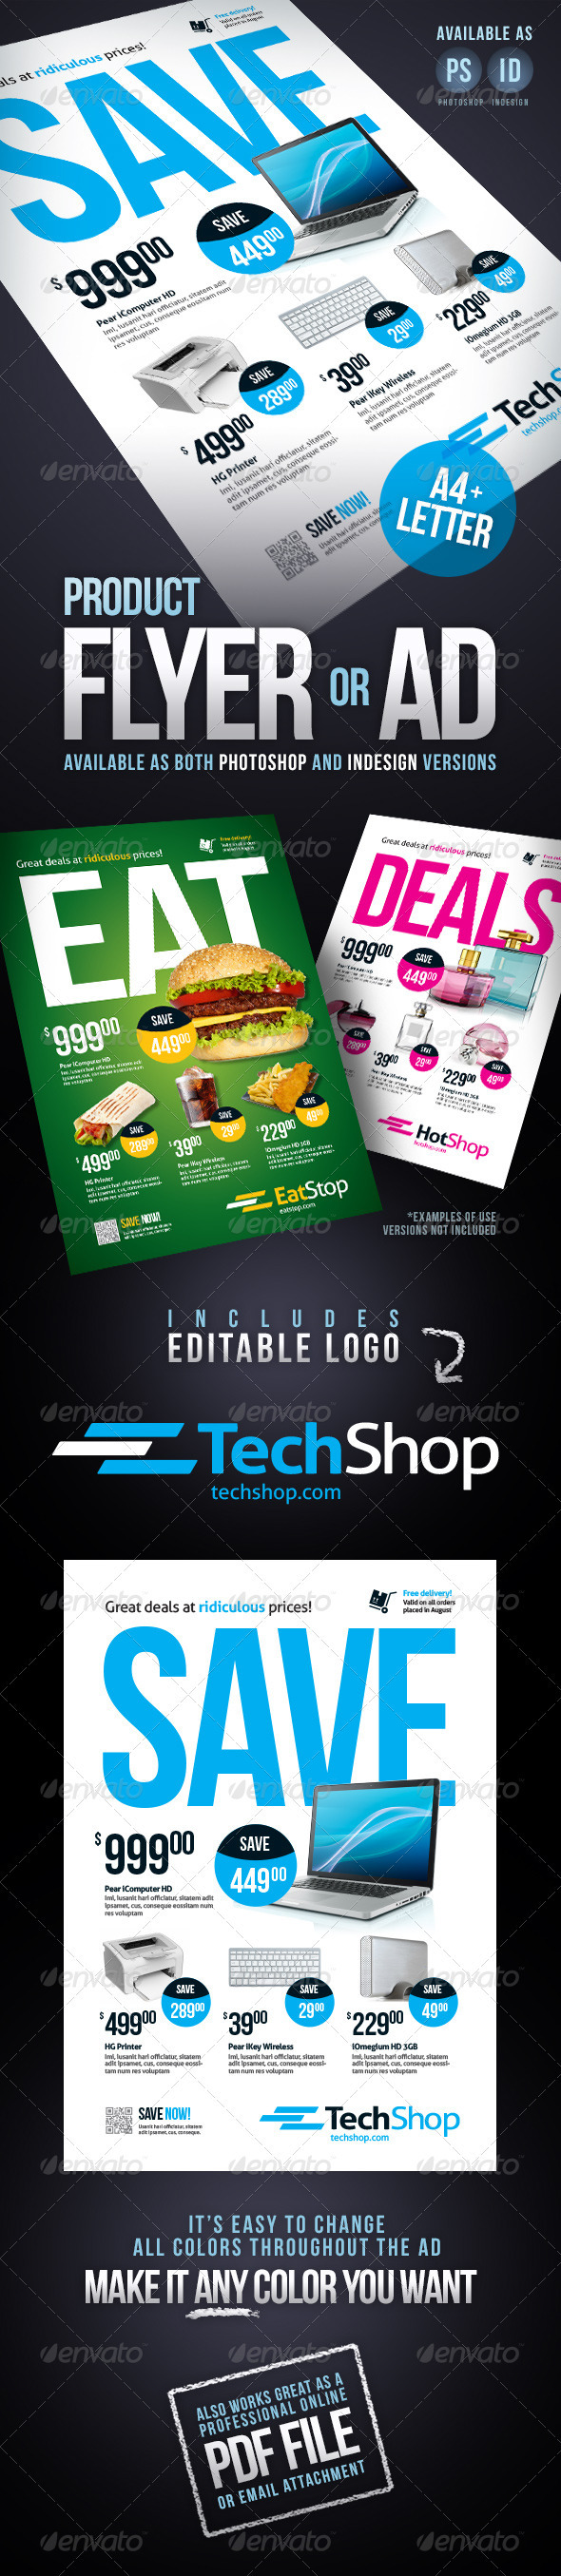 Product flyer / Ad  - Commerce Flyers